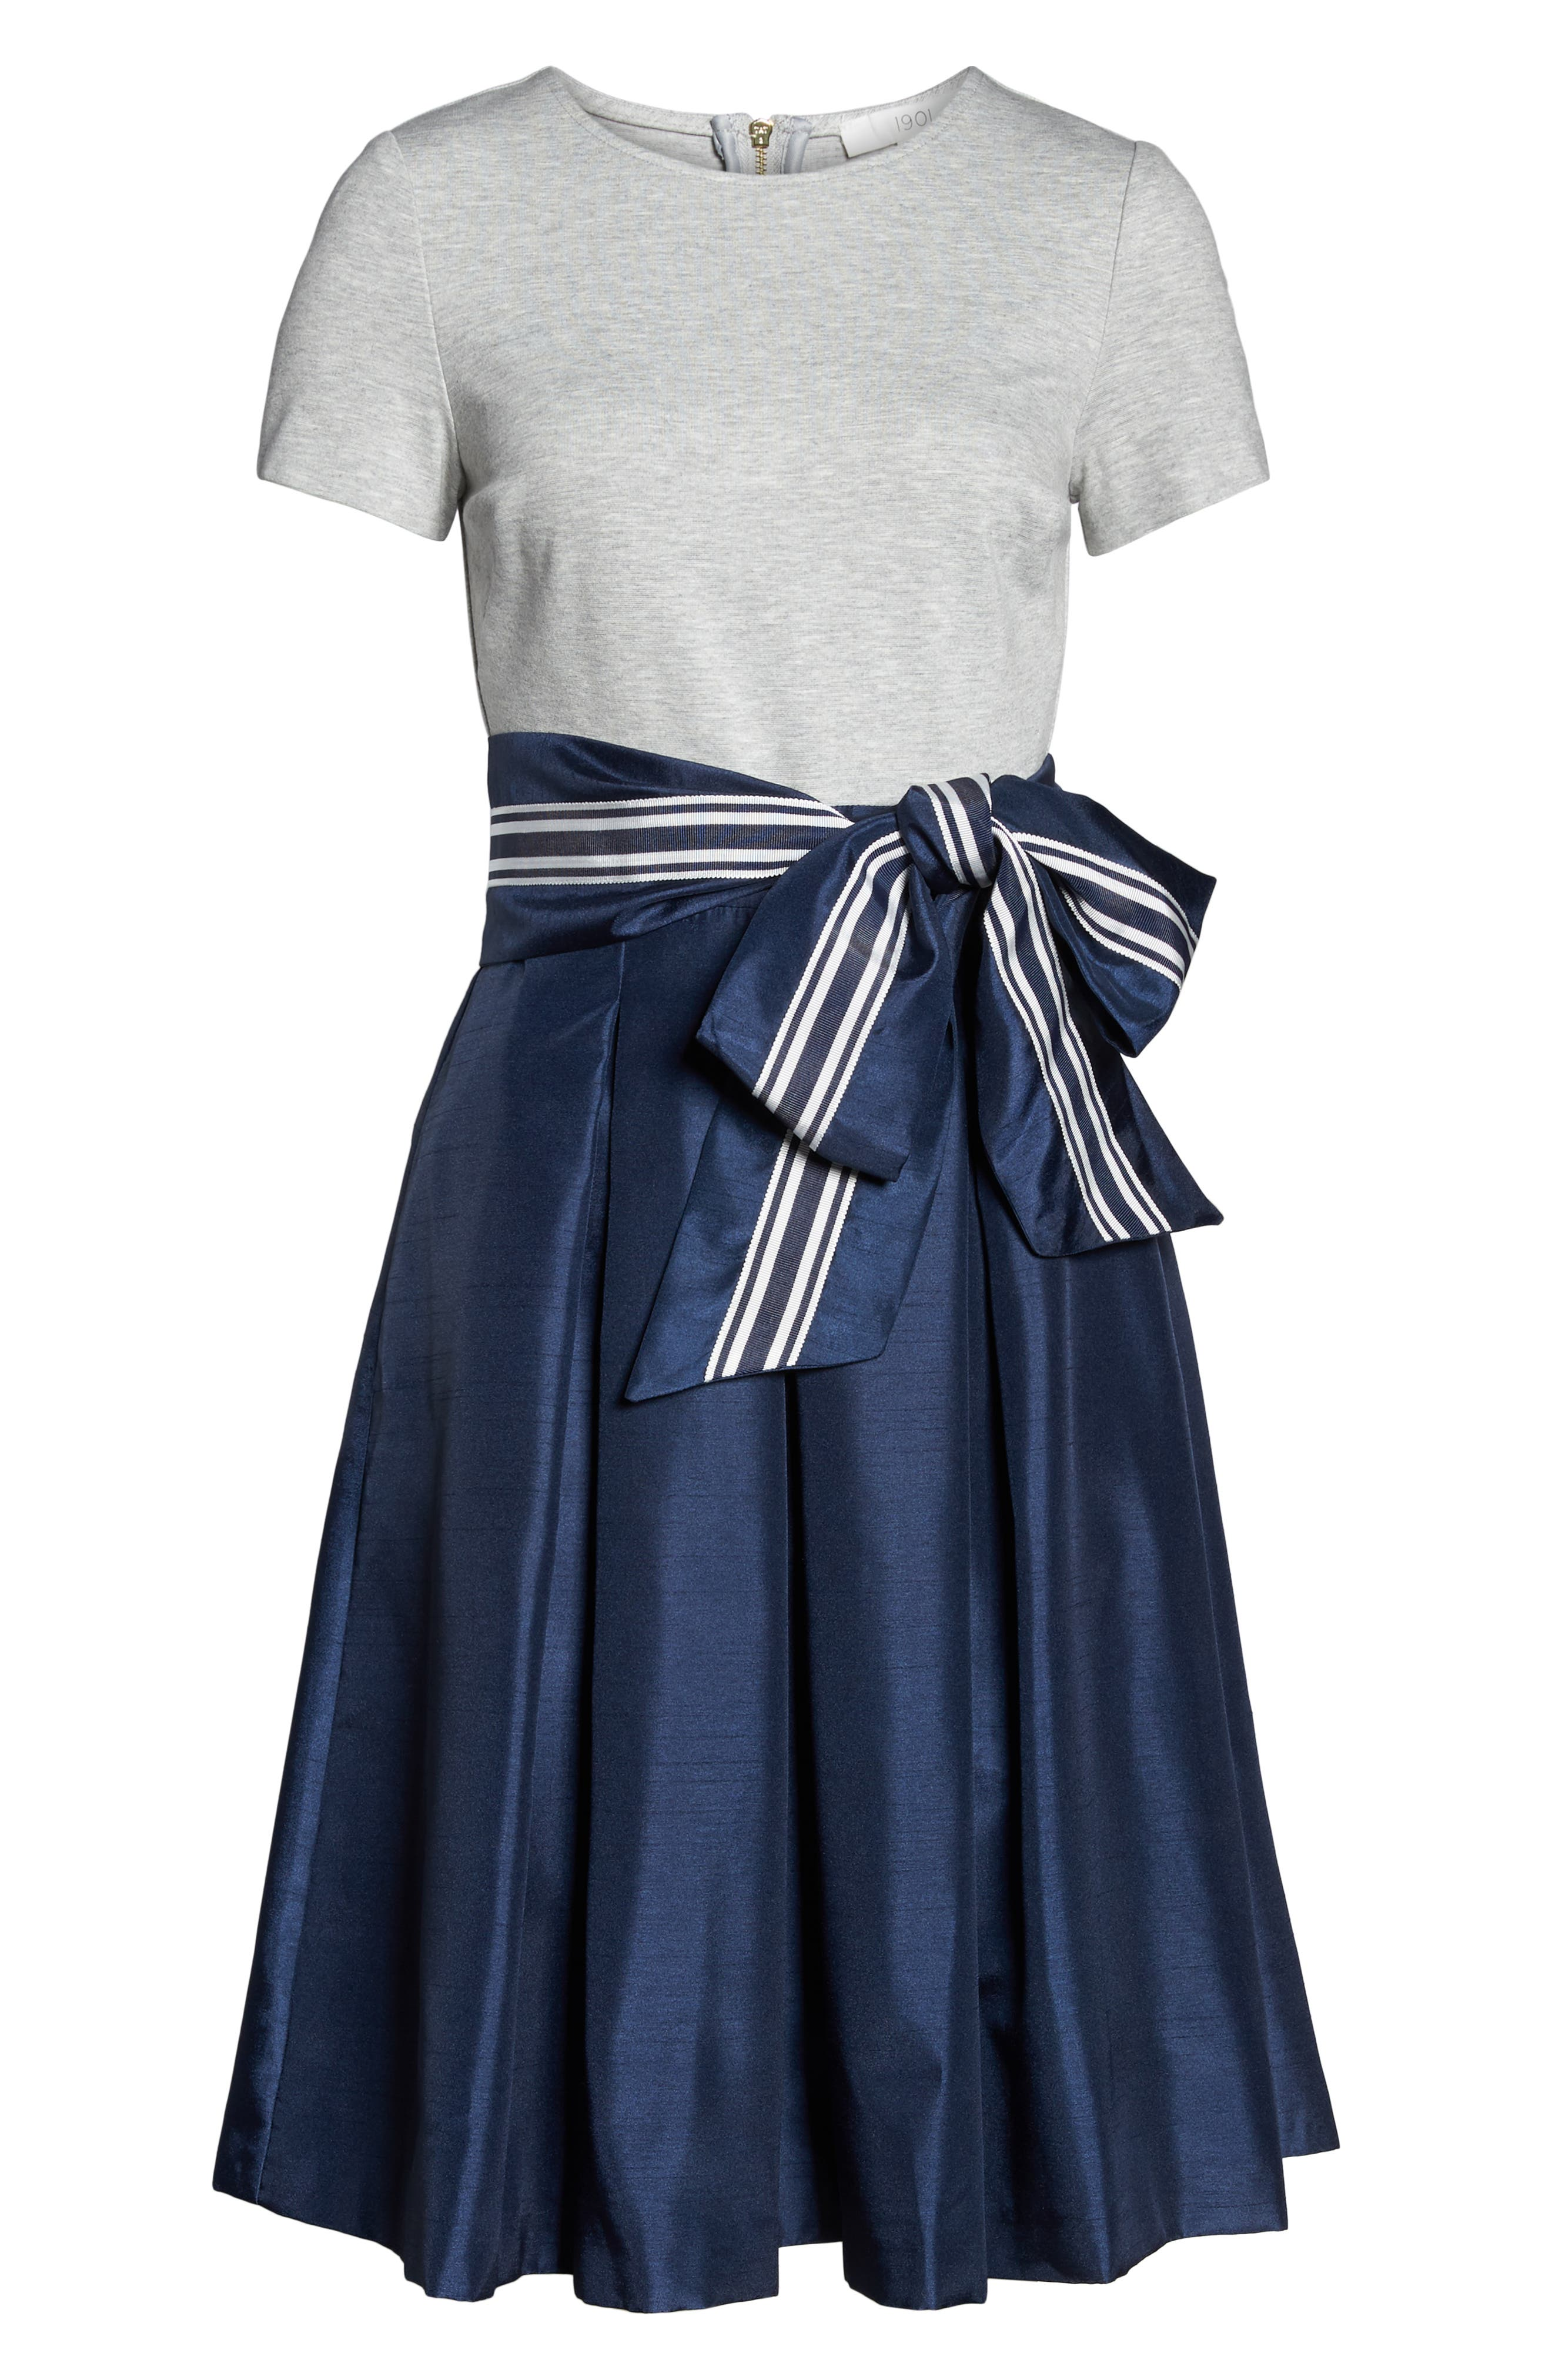 Mixed Media Dress,                             Alternate thumbnail 7, color,                             GREY- NAVY COLORBLOCK